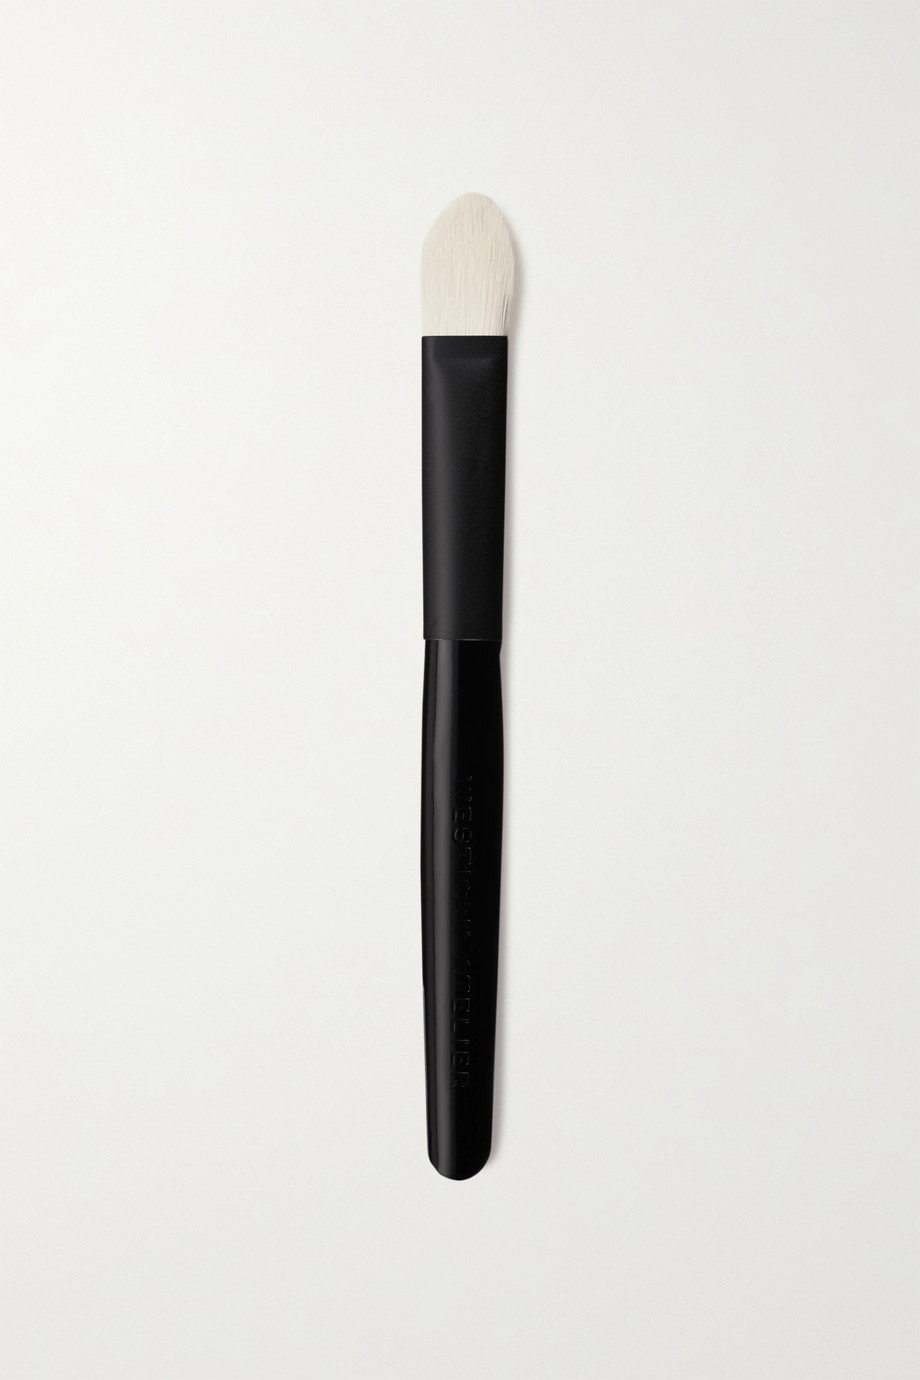 WESTMAN ATELIER Eye Shadow Brush I